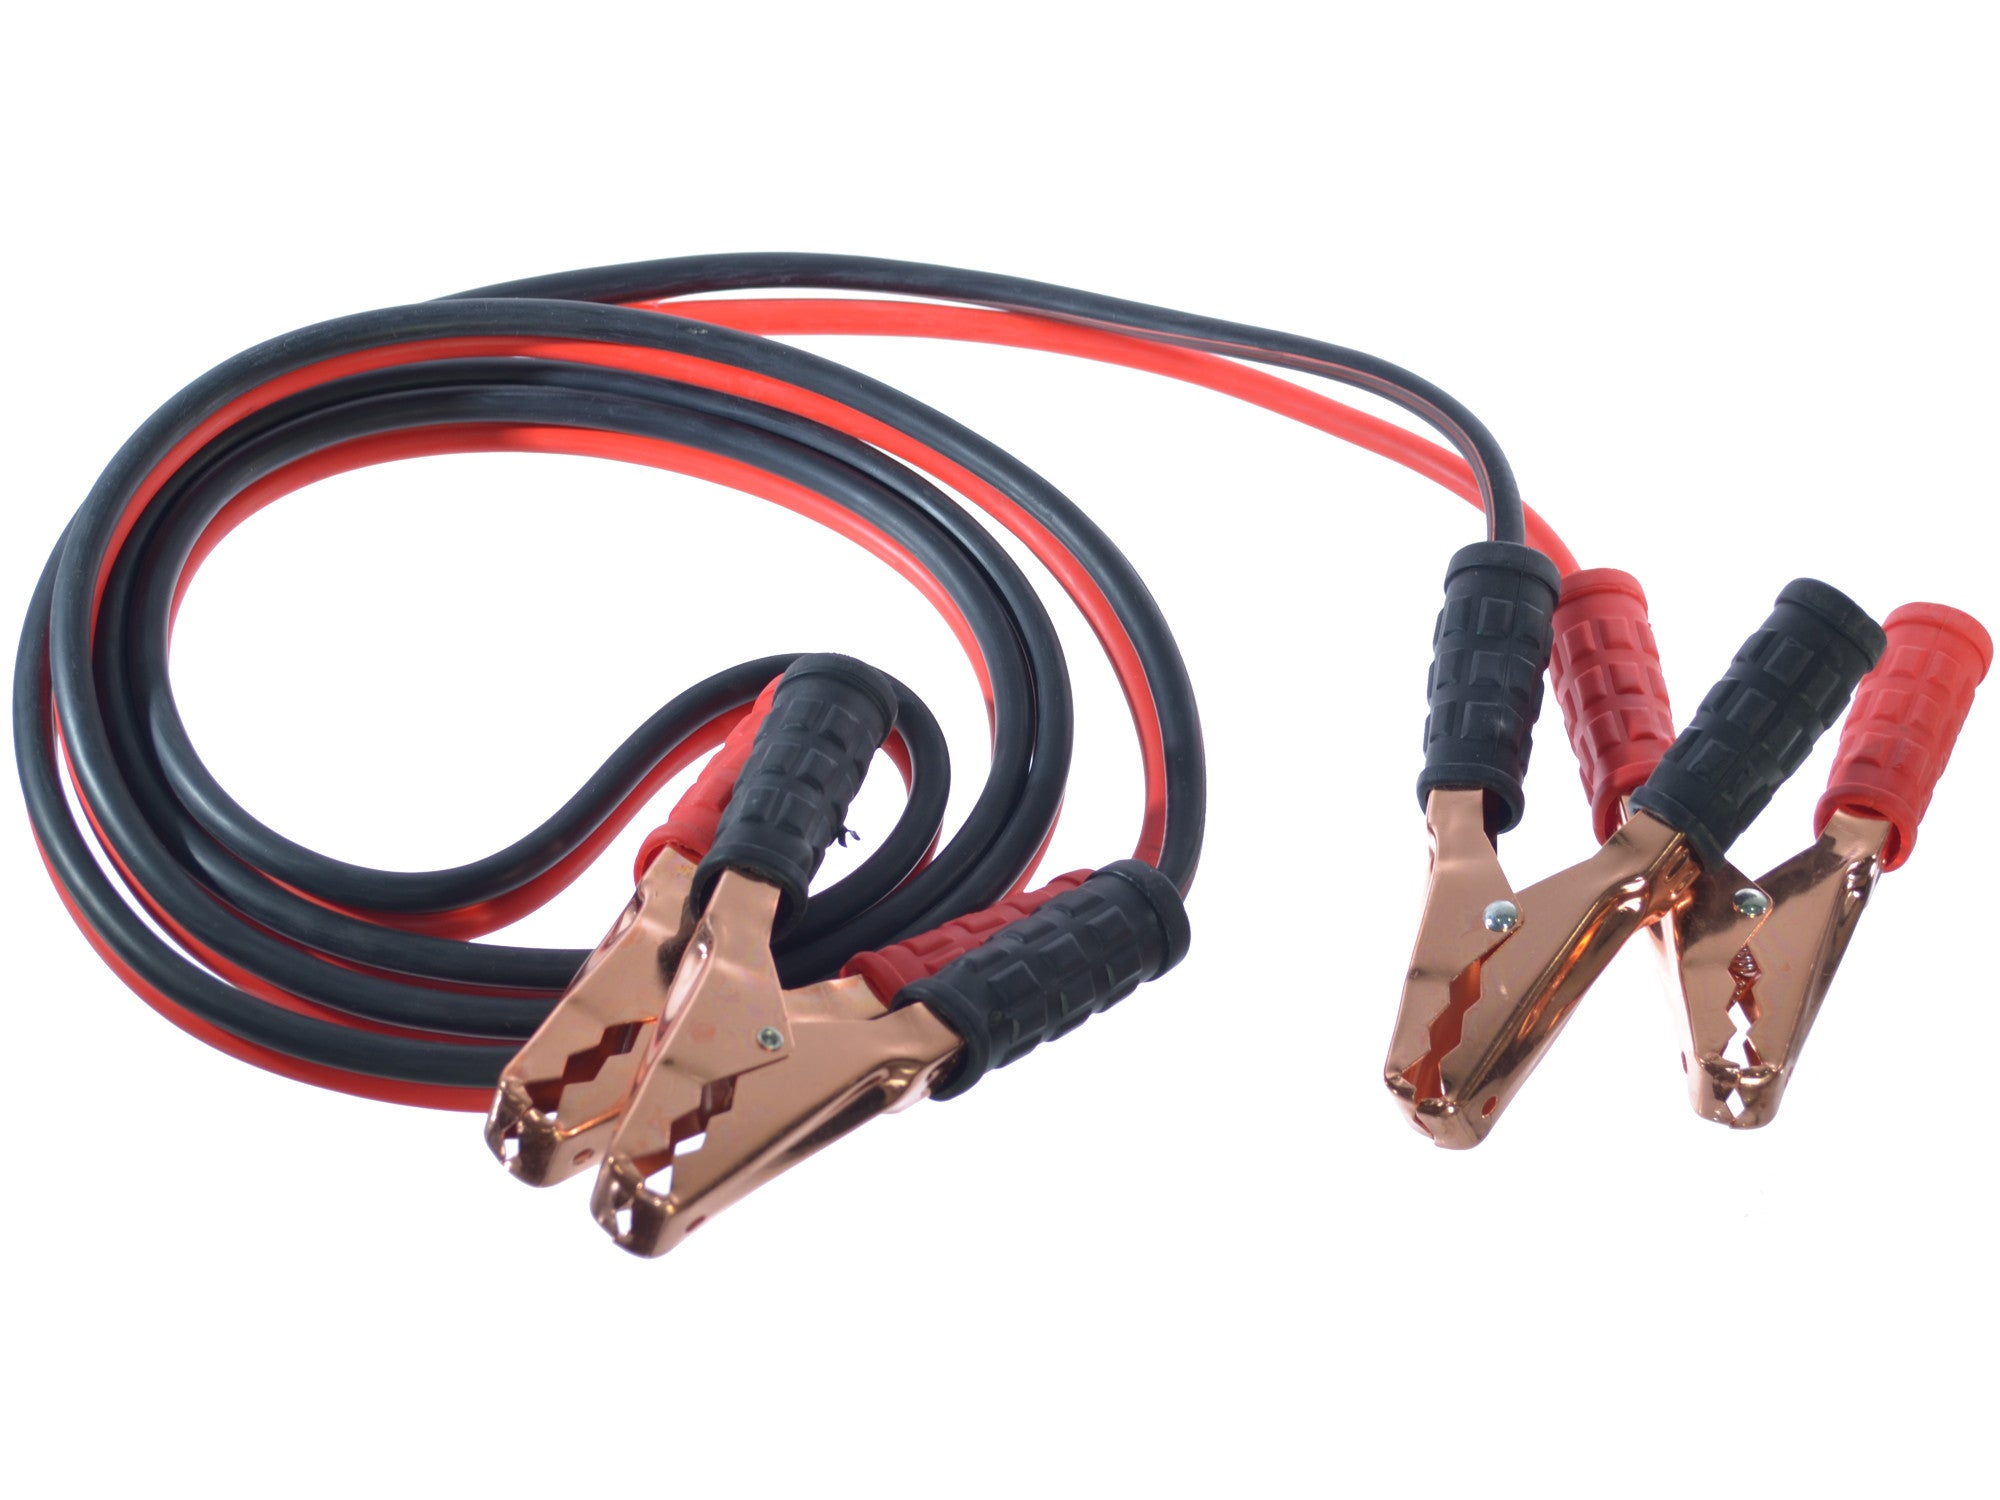 Safety Jumper Cables : Majic amp power booster cables gauge heavy duty